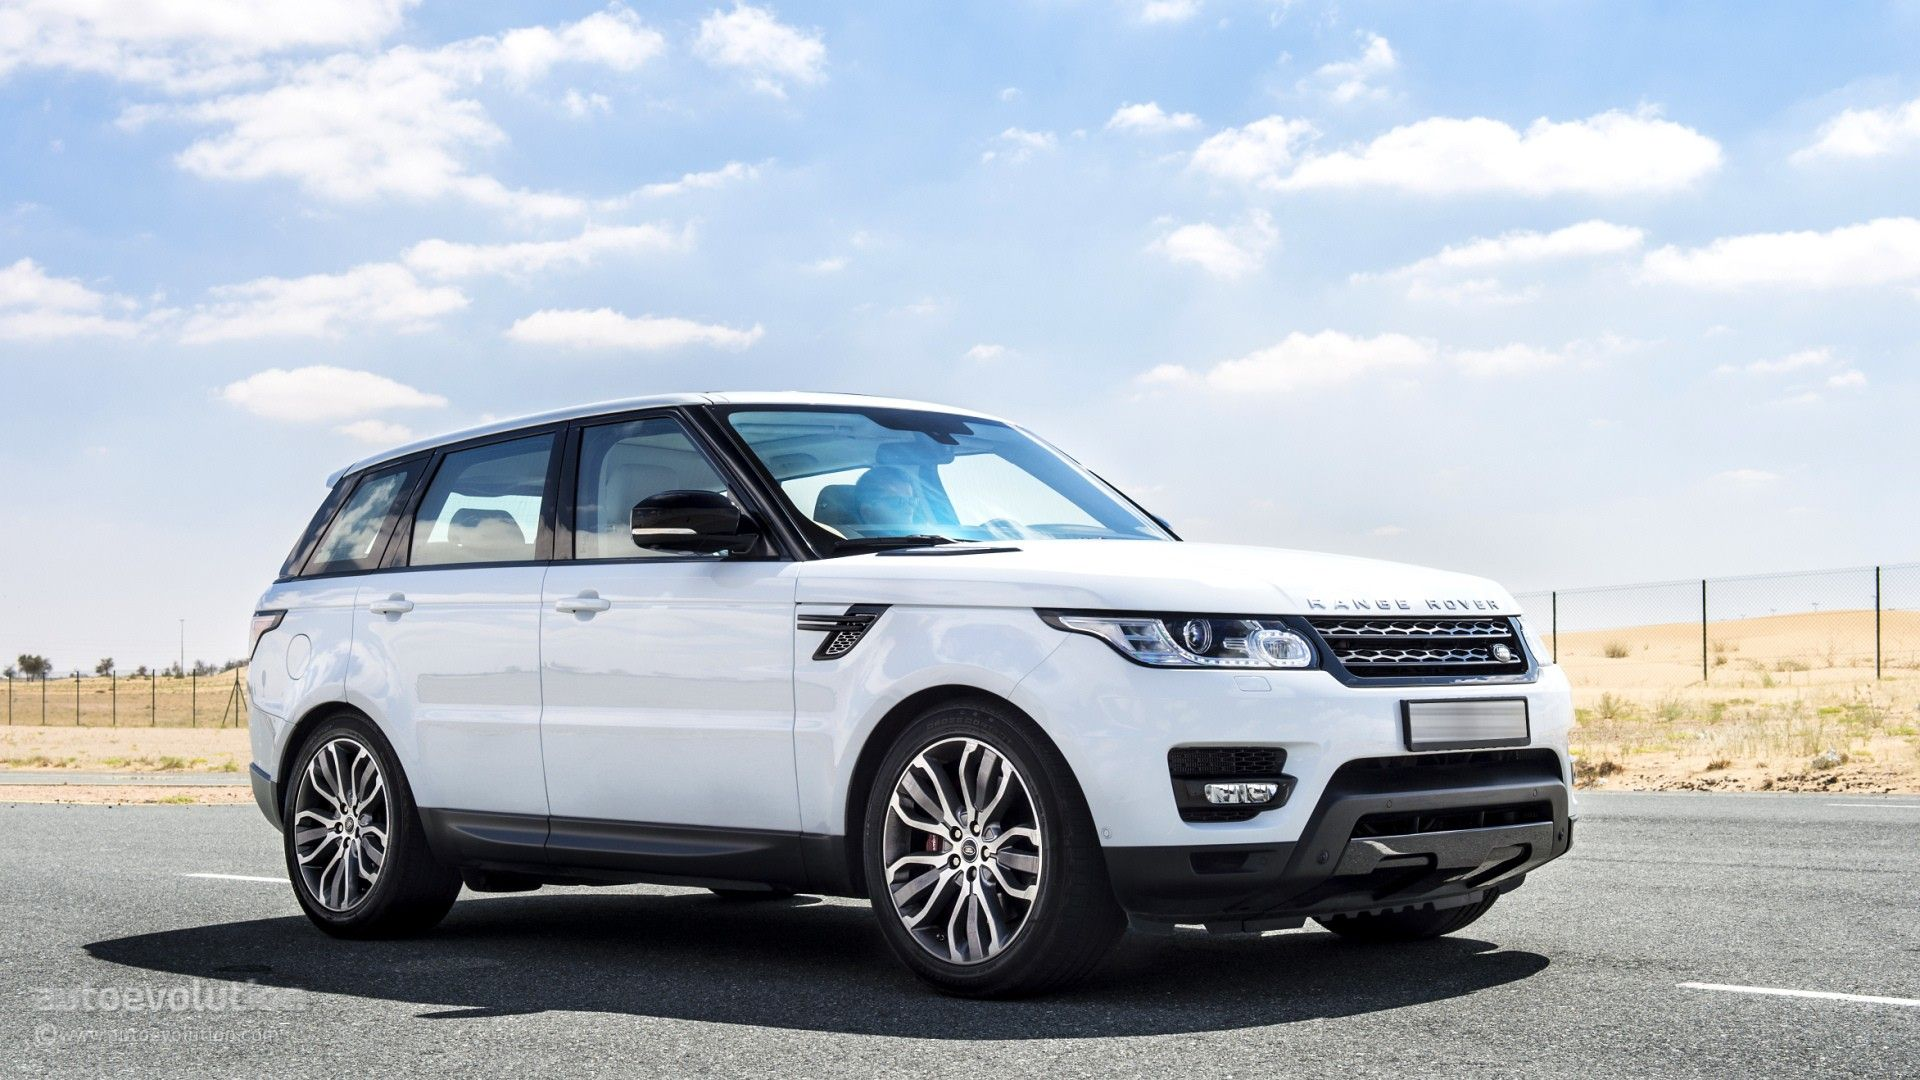 2015 Range Rover Sport Supercharged Review Range Rover Sport Range Rover Range Rover White